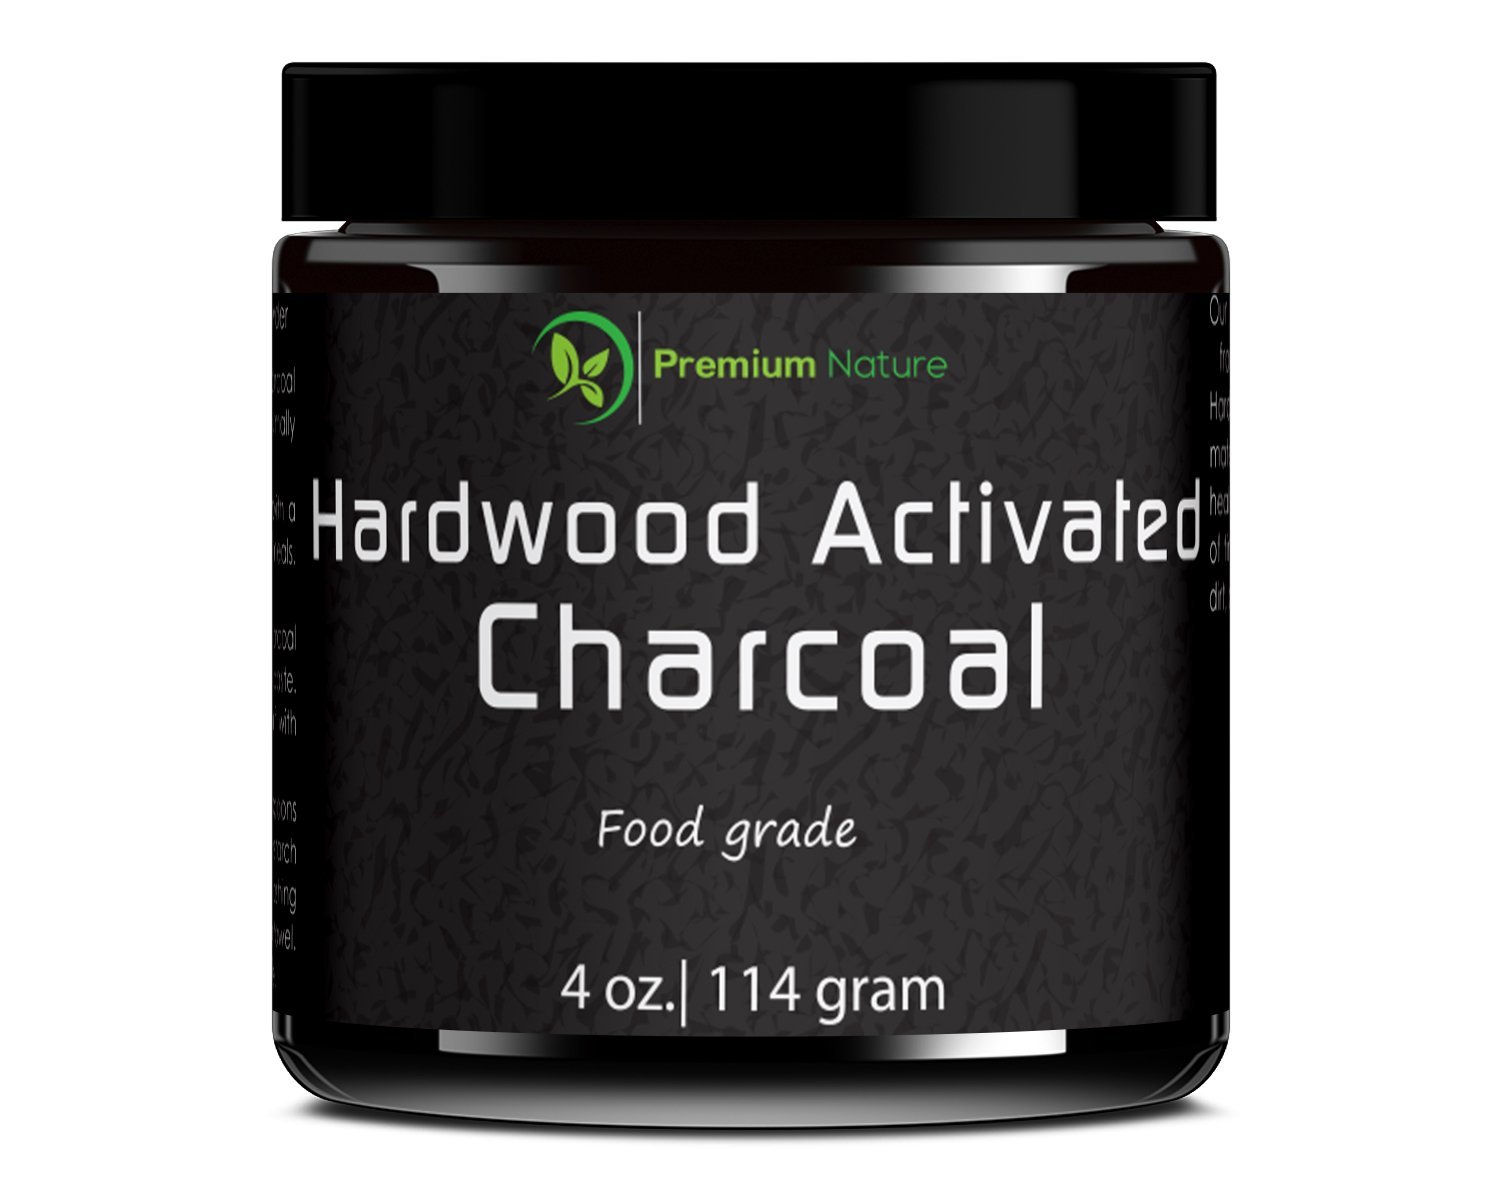 Teeth Whitening Activated Charcoal Powder - 4oz Hardwood DIY Treatment for Water Natural Dental Health Sensitive Teeth & Gums Eliminate Bad Breath Toothpaste Multi Use Skin Detox - Premium Nature